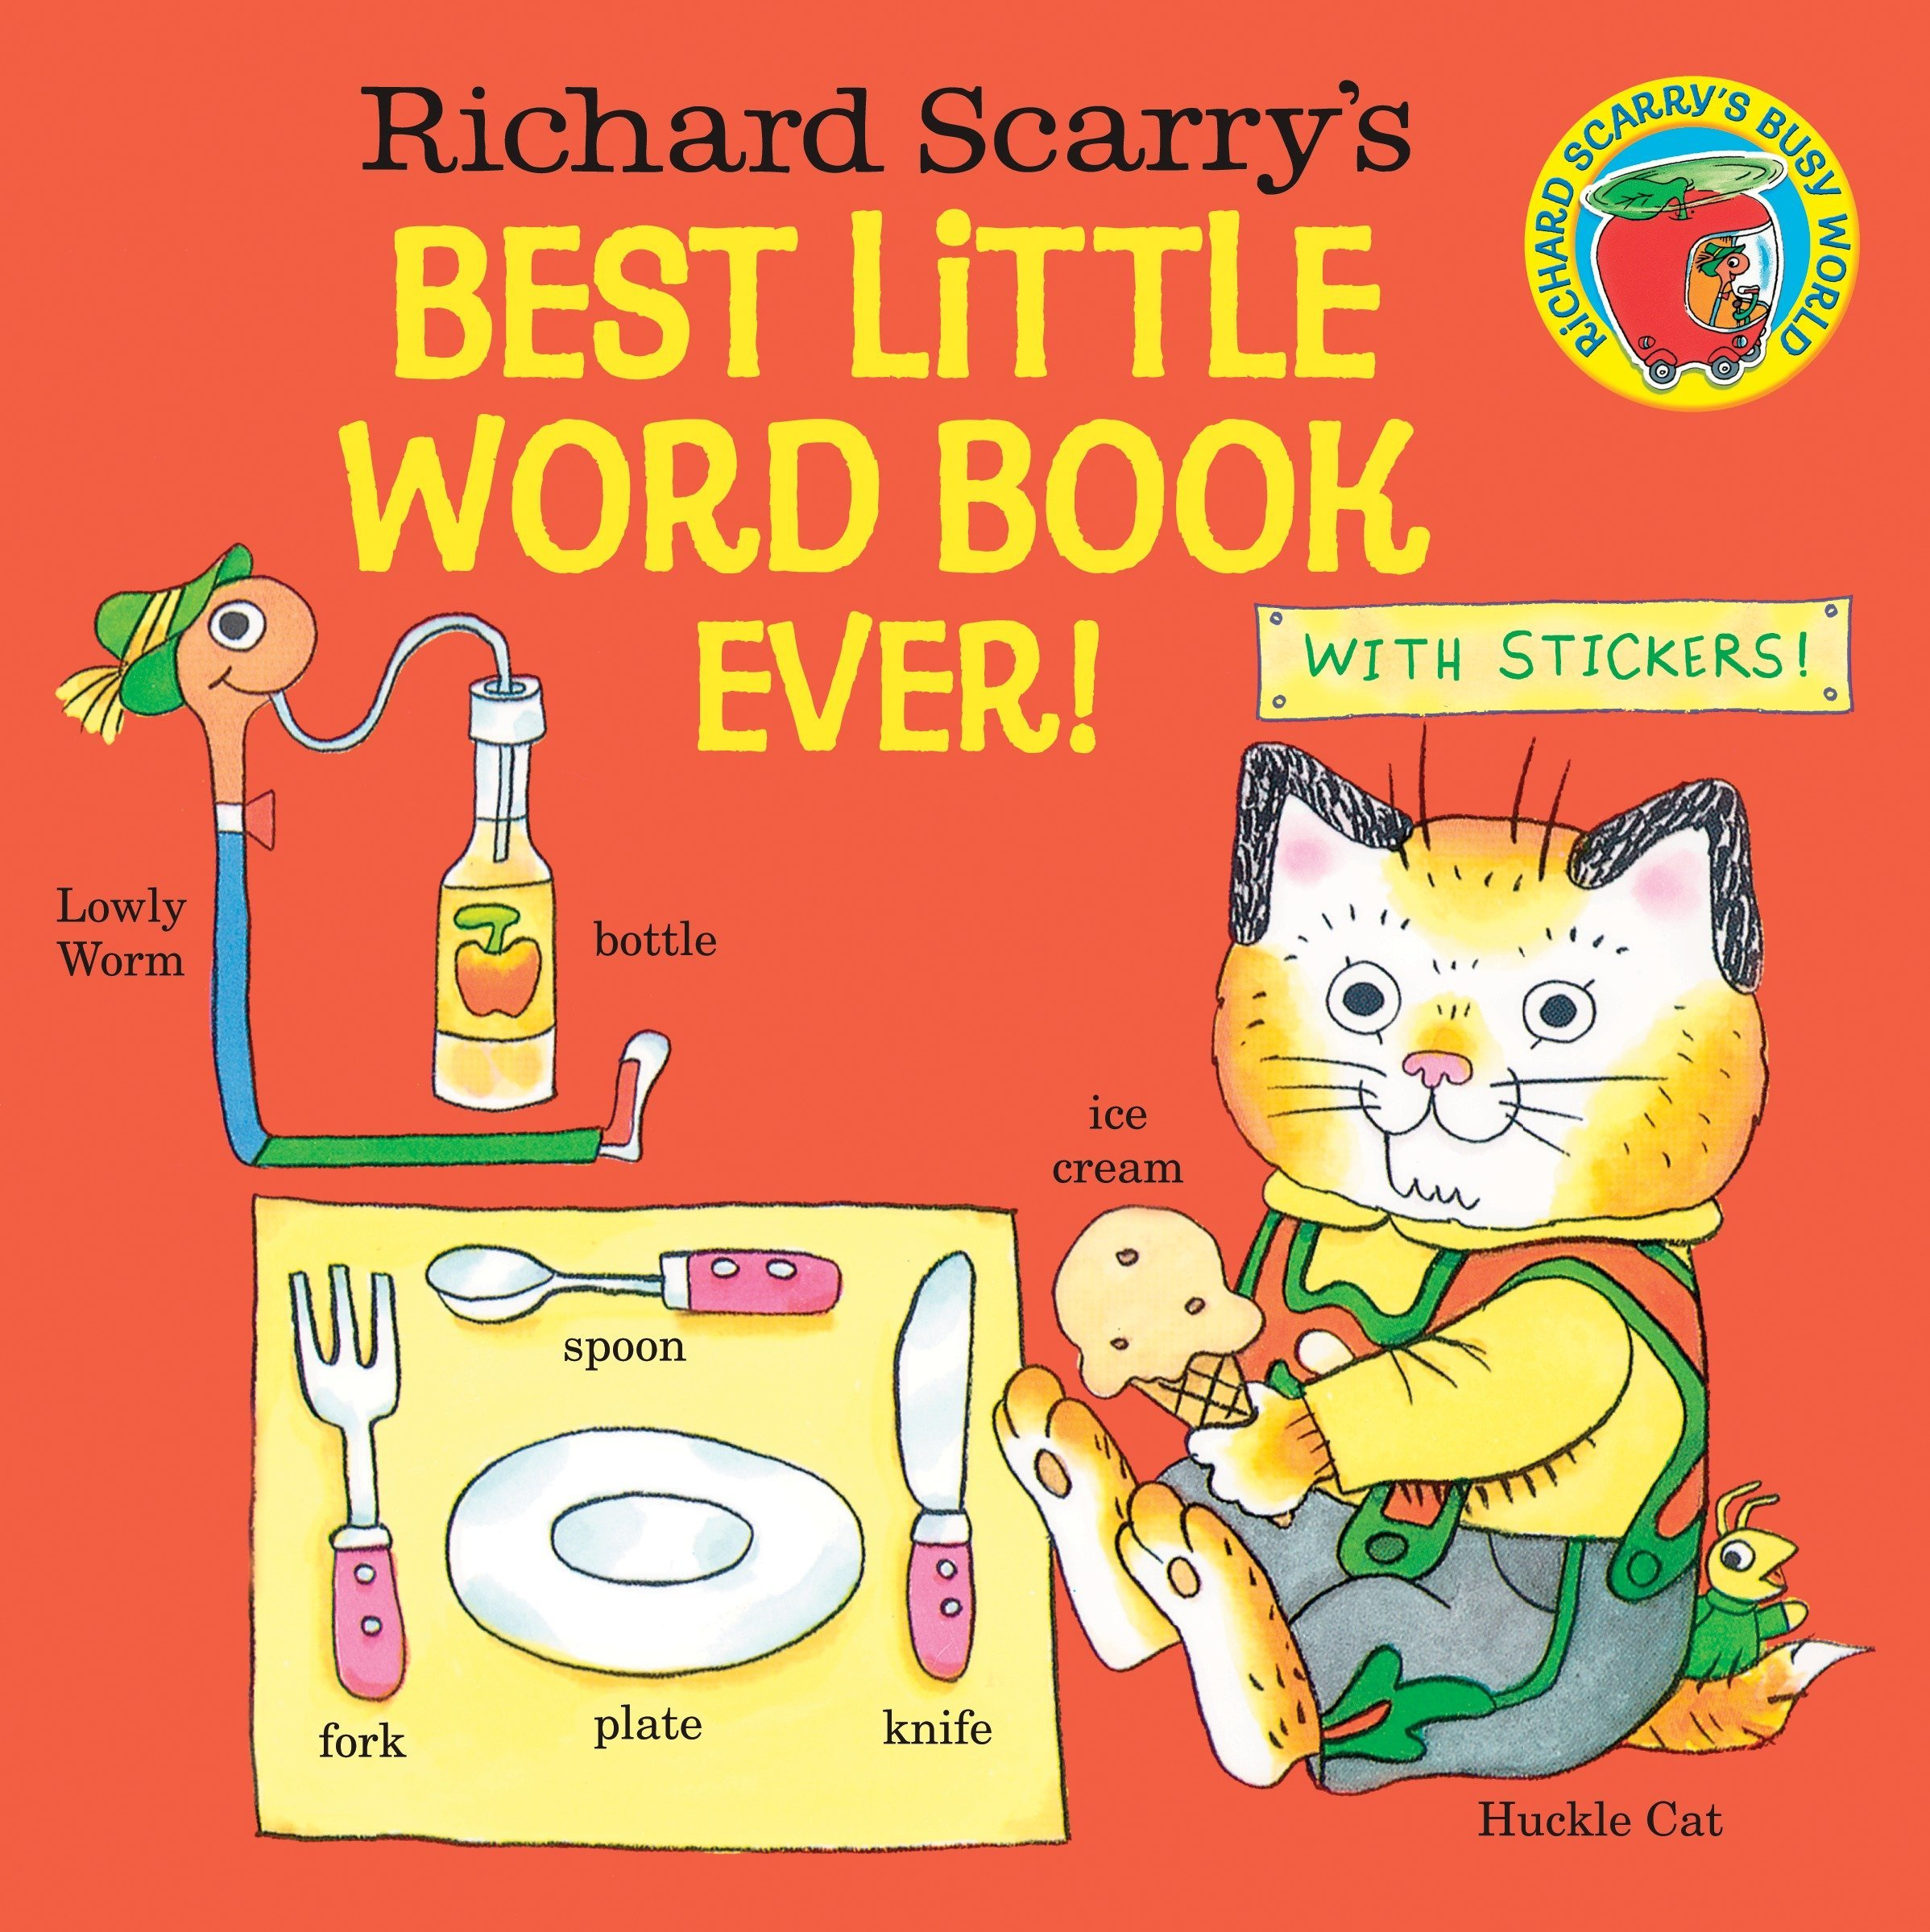 Richard Scarry's Best Little Word Book Ever! (Pictureback(R))